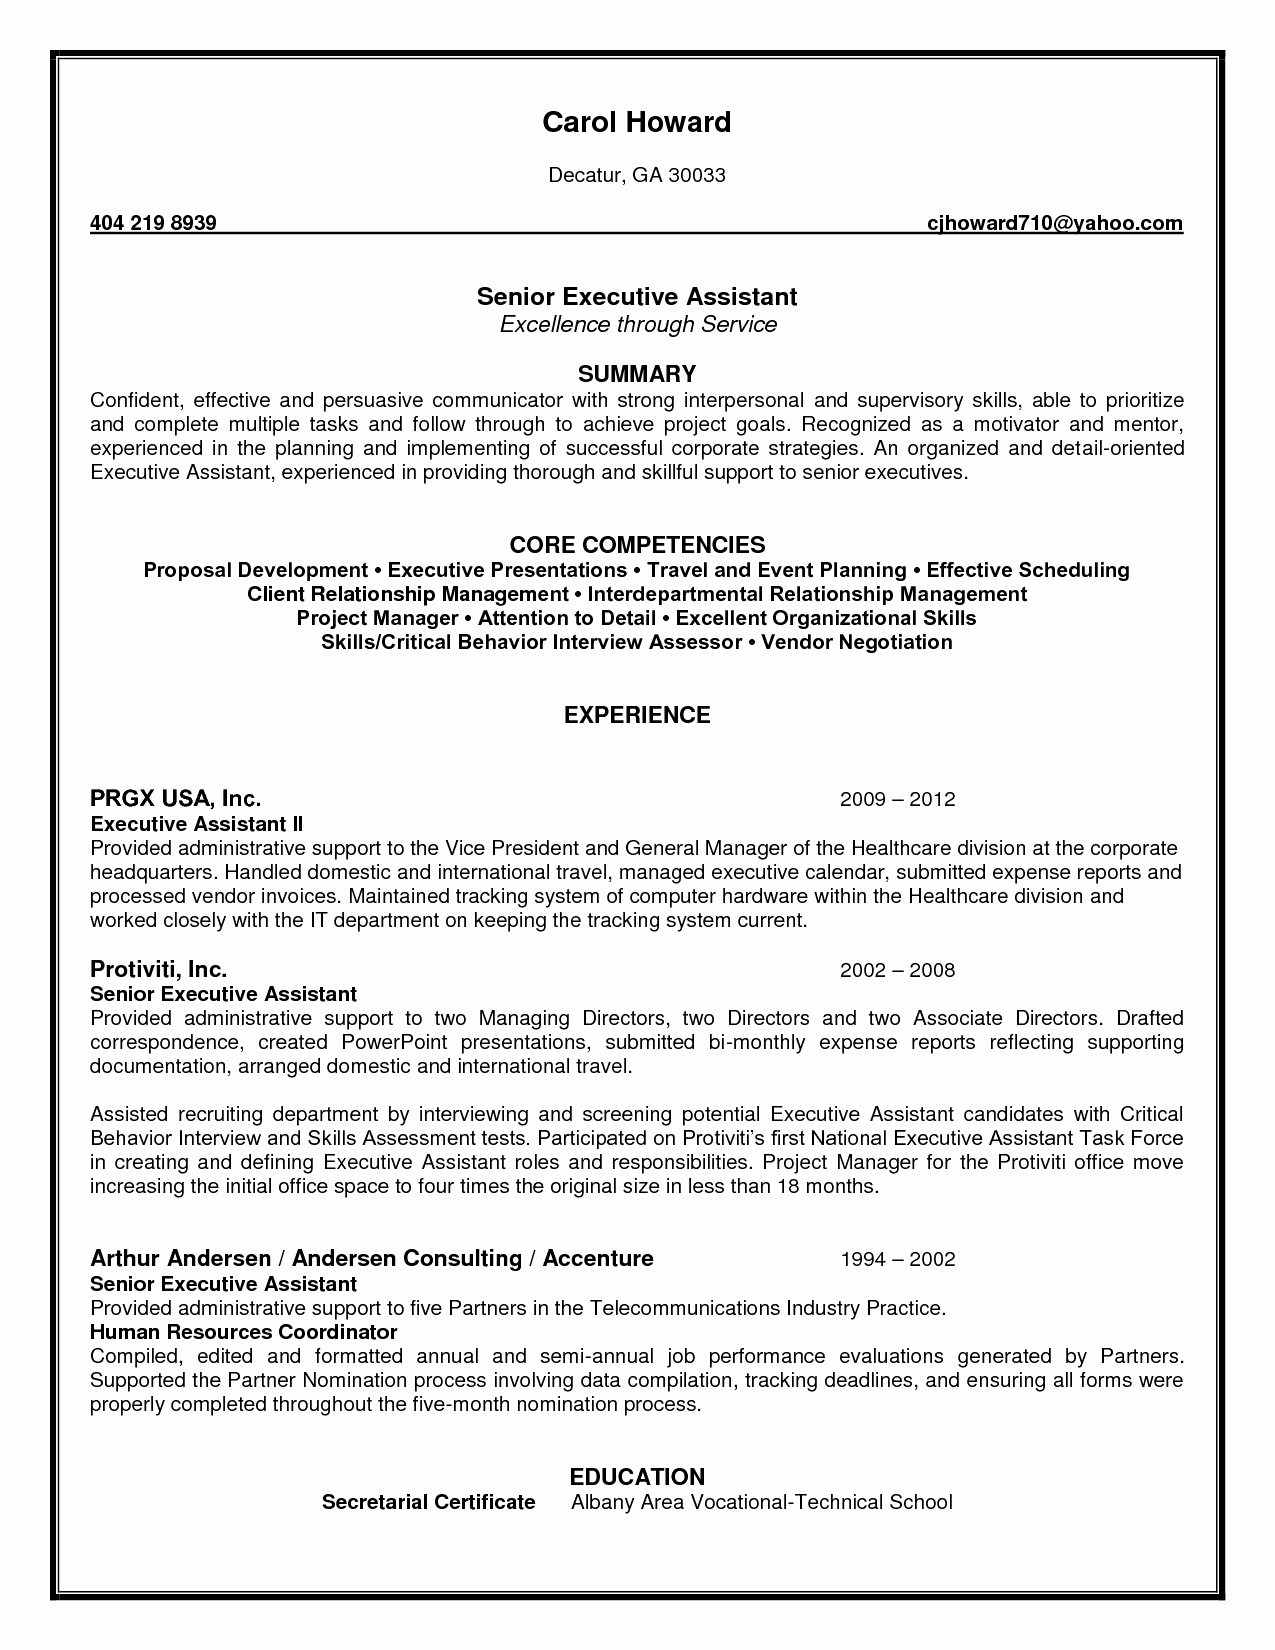 Human Resources Coordinator Resume - Executive assistant Resumes Unique Resume Template Executive